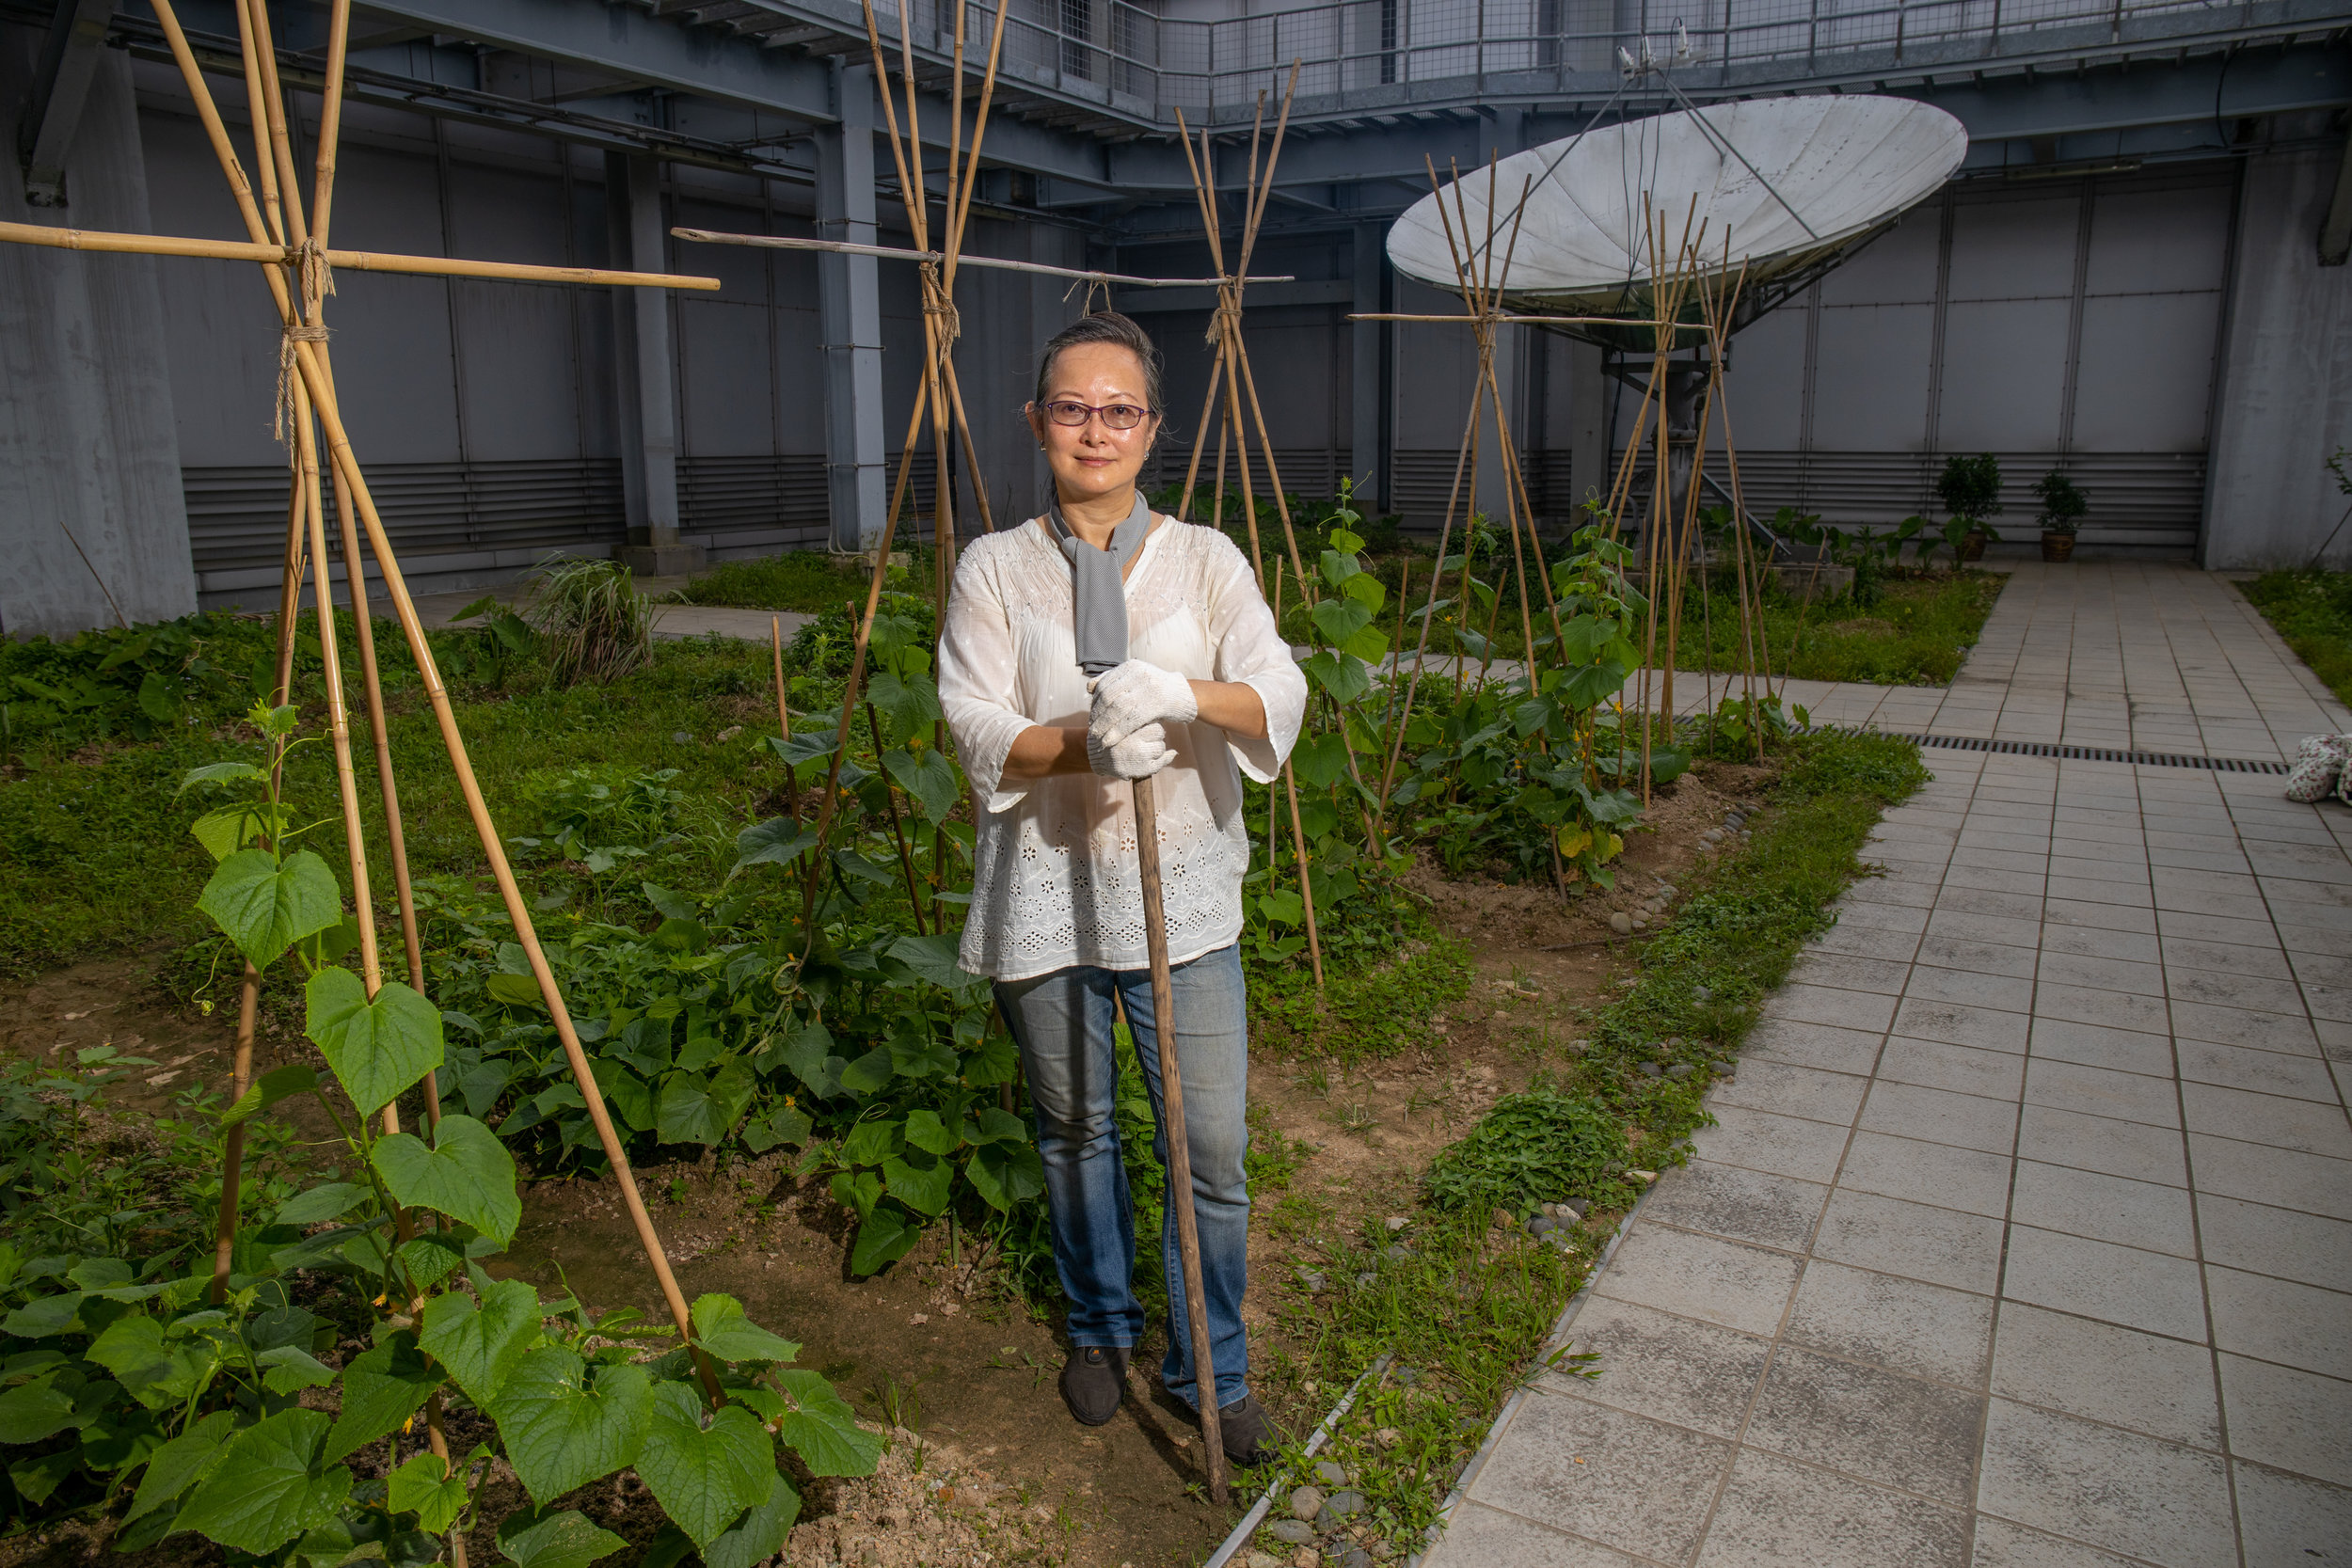 This is a Photograph of the largest urban Farm in Hong Kong. It is on top of the high rise multi-use complex, Hysan Place, a Hong Kong Landmark.